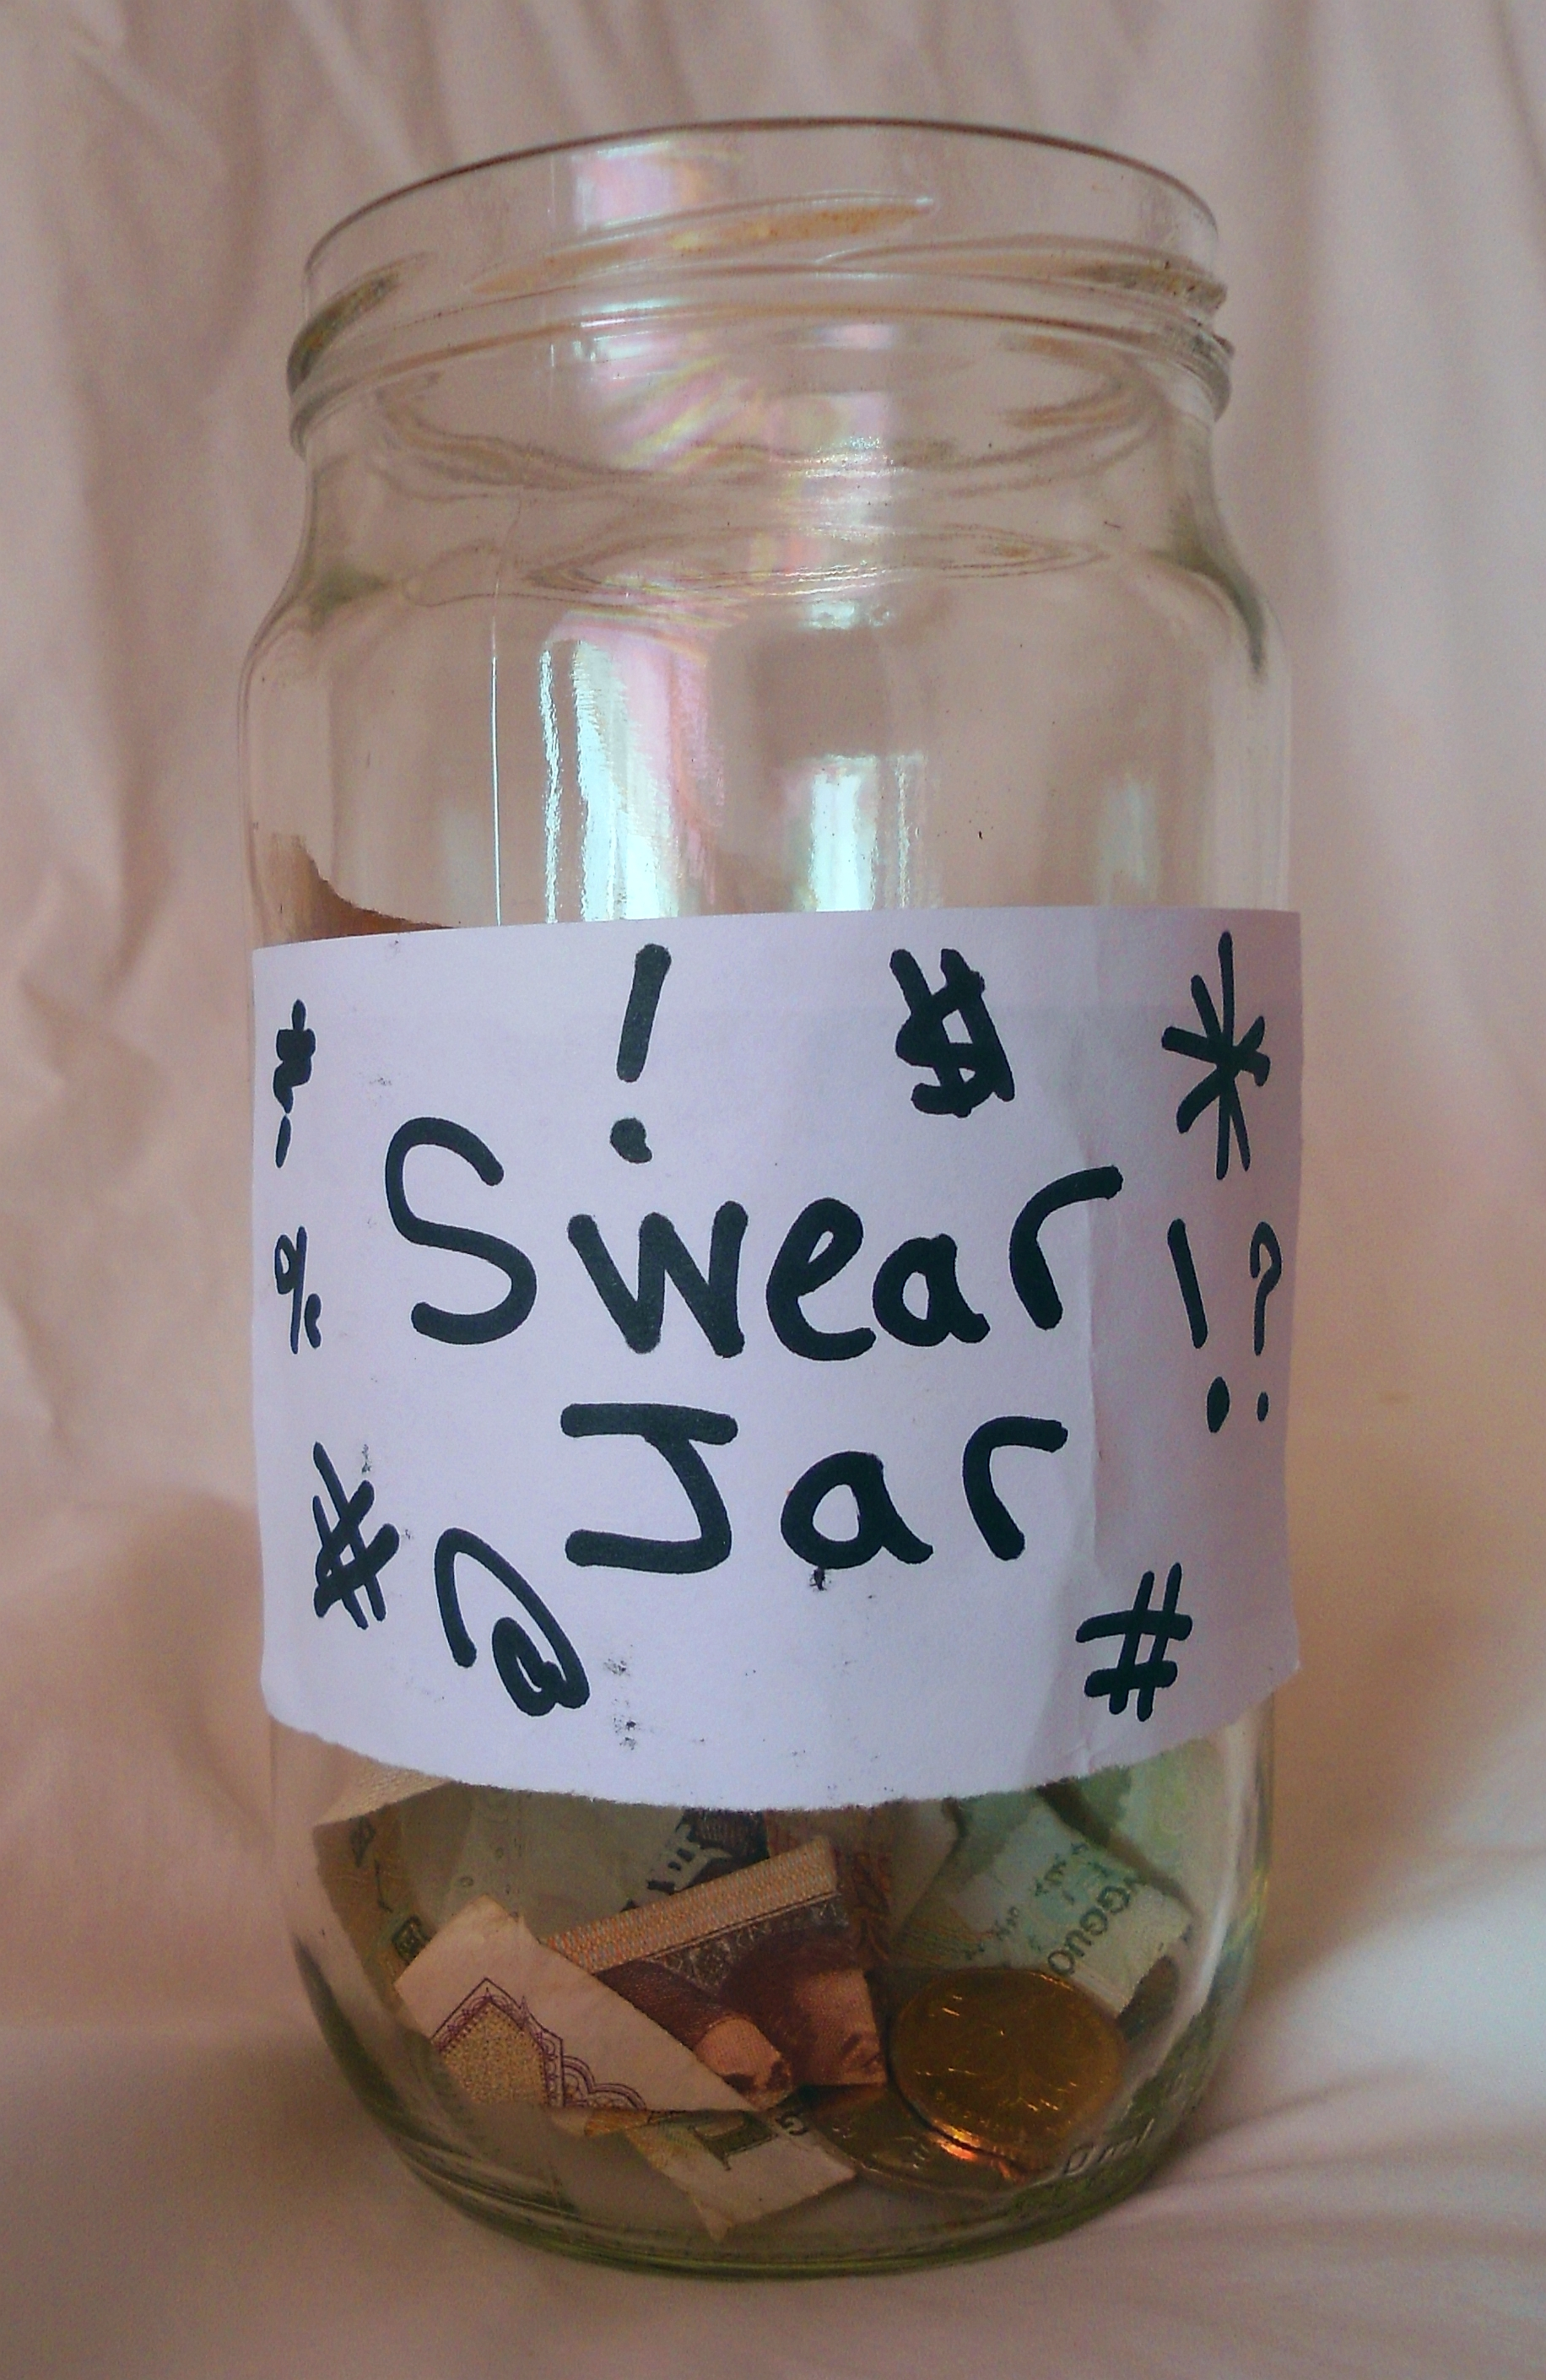 https://upload.wikimedia.org/wikipedia/commons/a/ae/Swear_jar_2.jpg